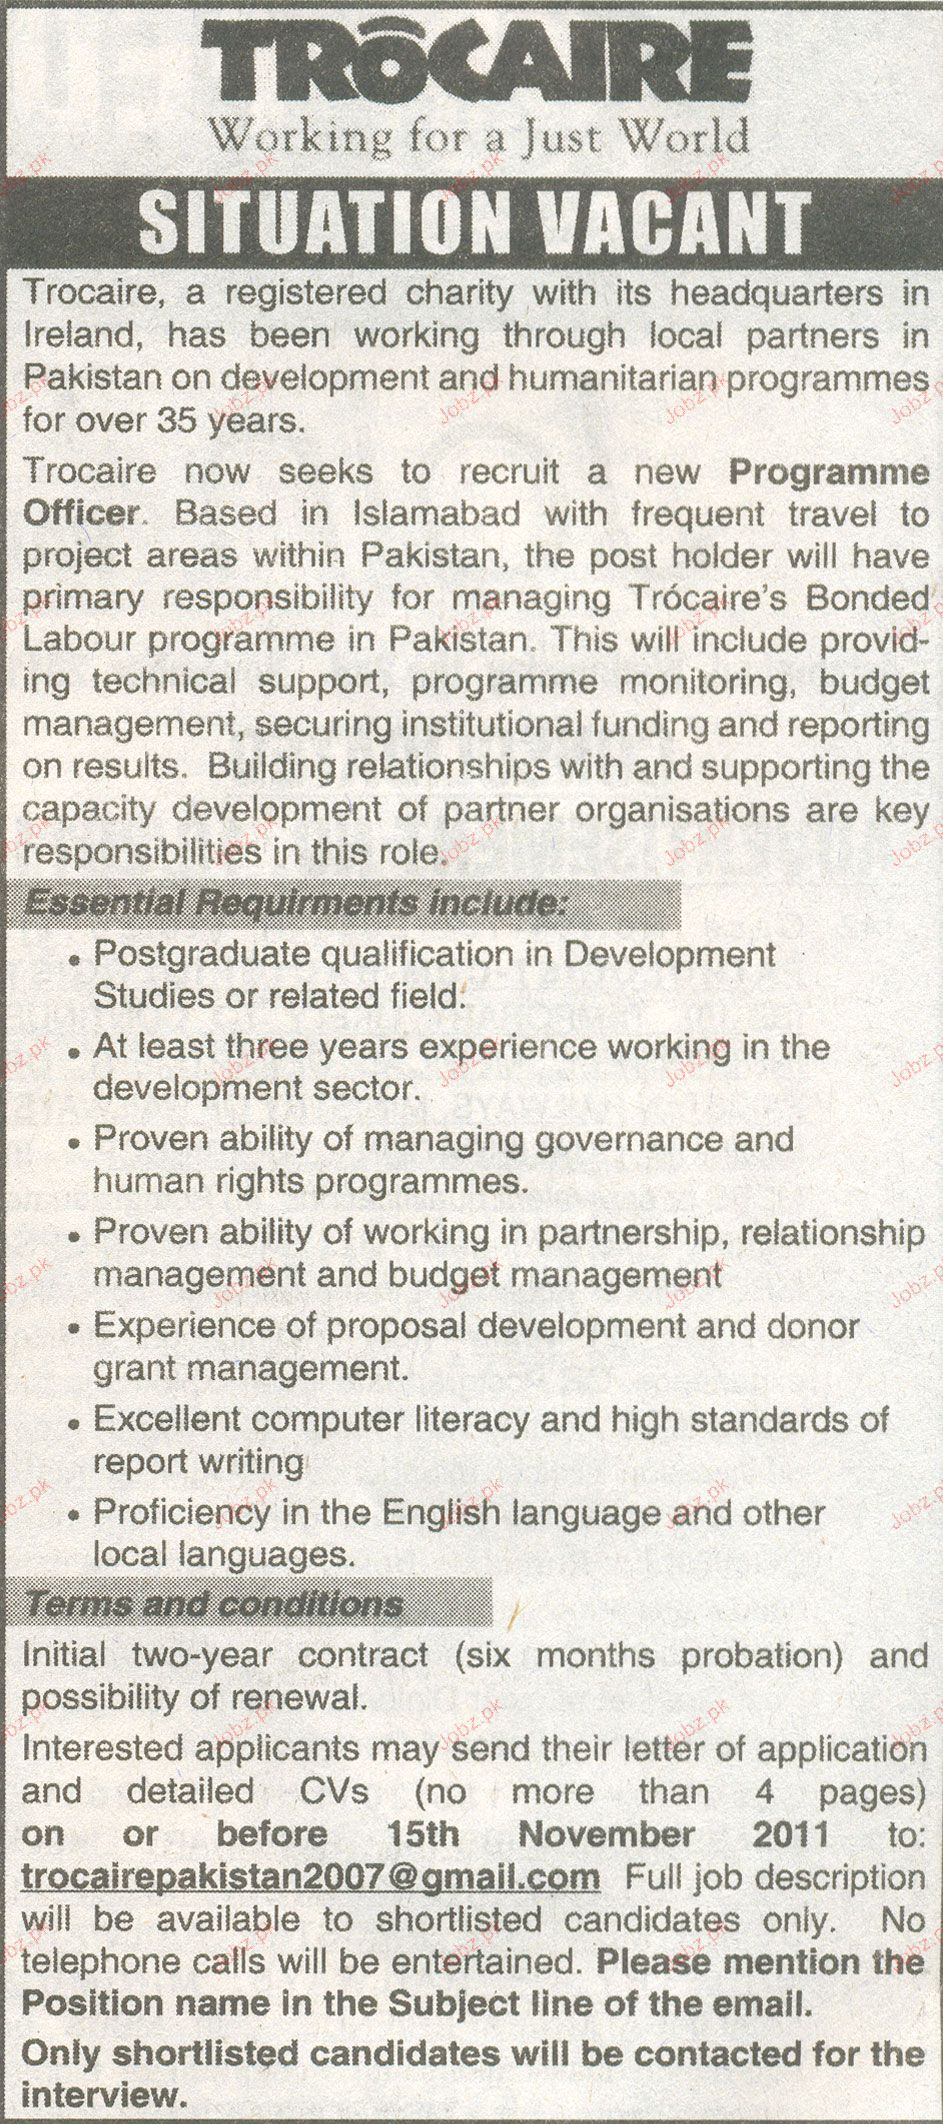 Programme Officer Job Opportunity